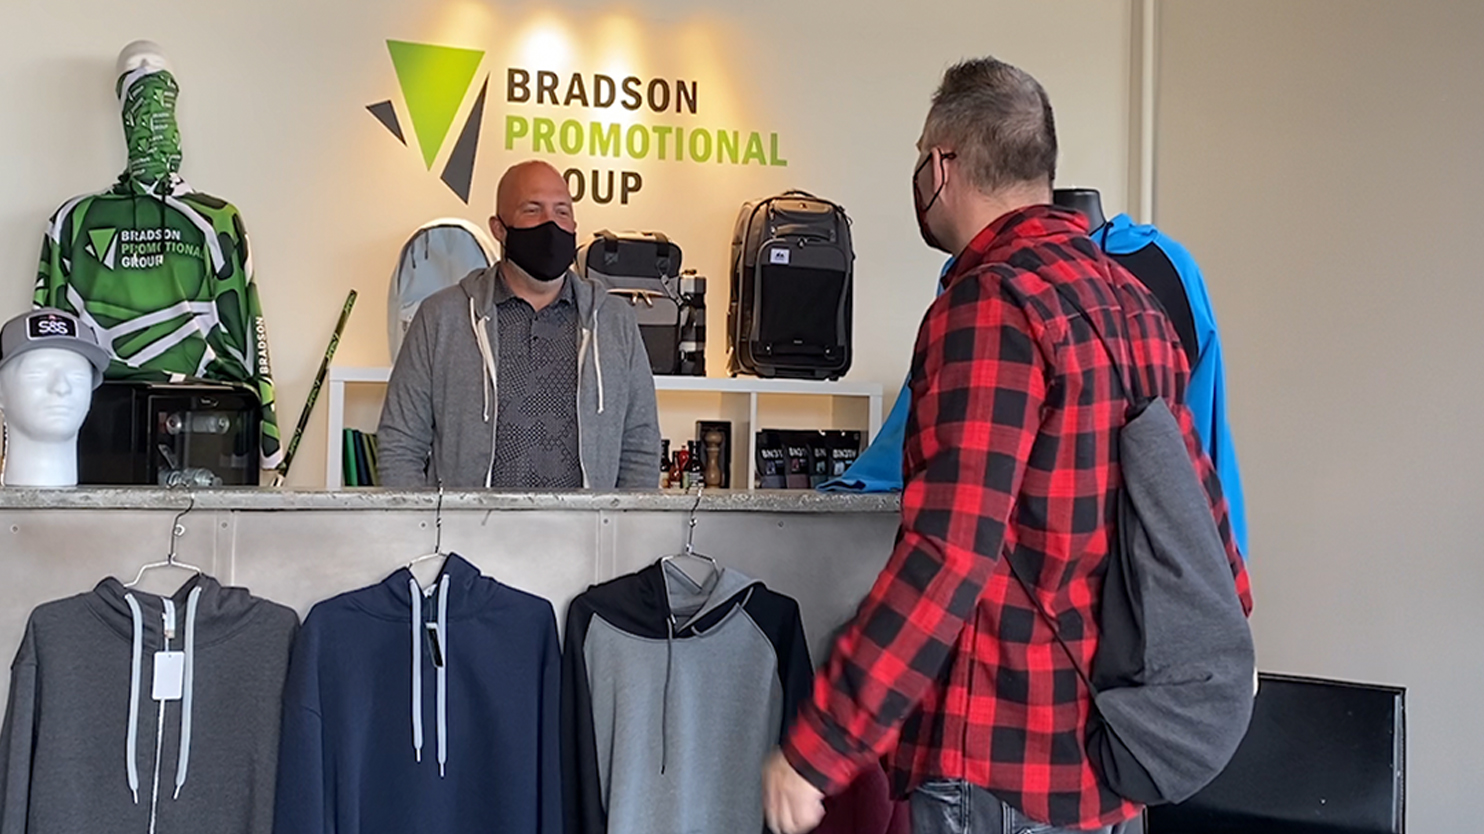 Kegs & Skins are back to talk about the latest in hoodie fashion! Connect with us to get one of these in your hands 780-452-3228 admin@bradsongroup.com